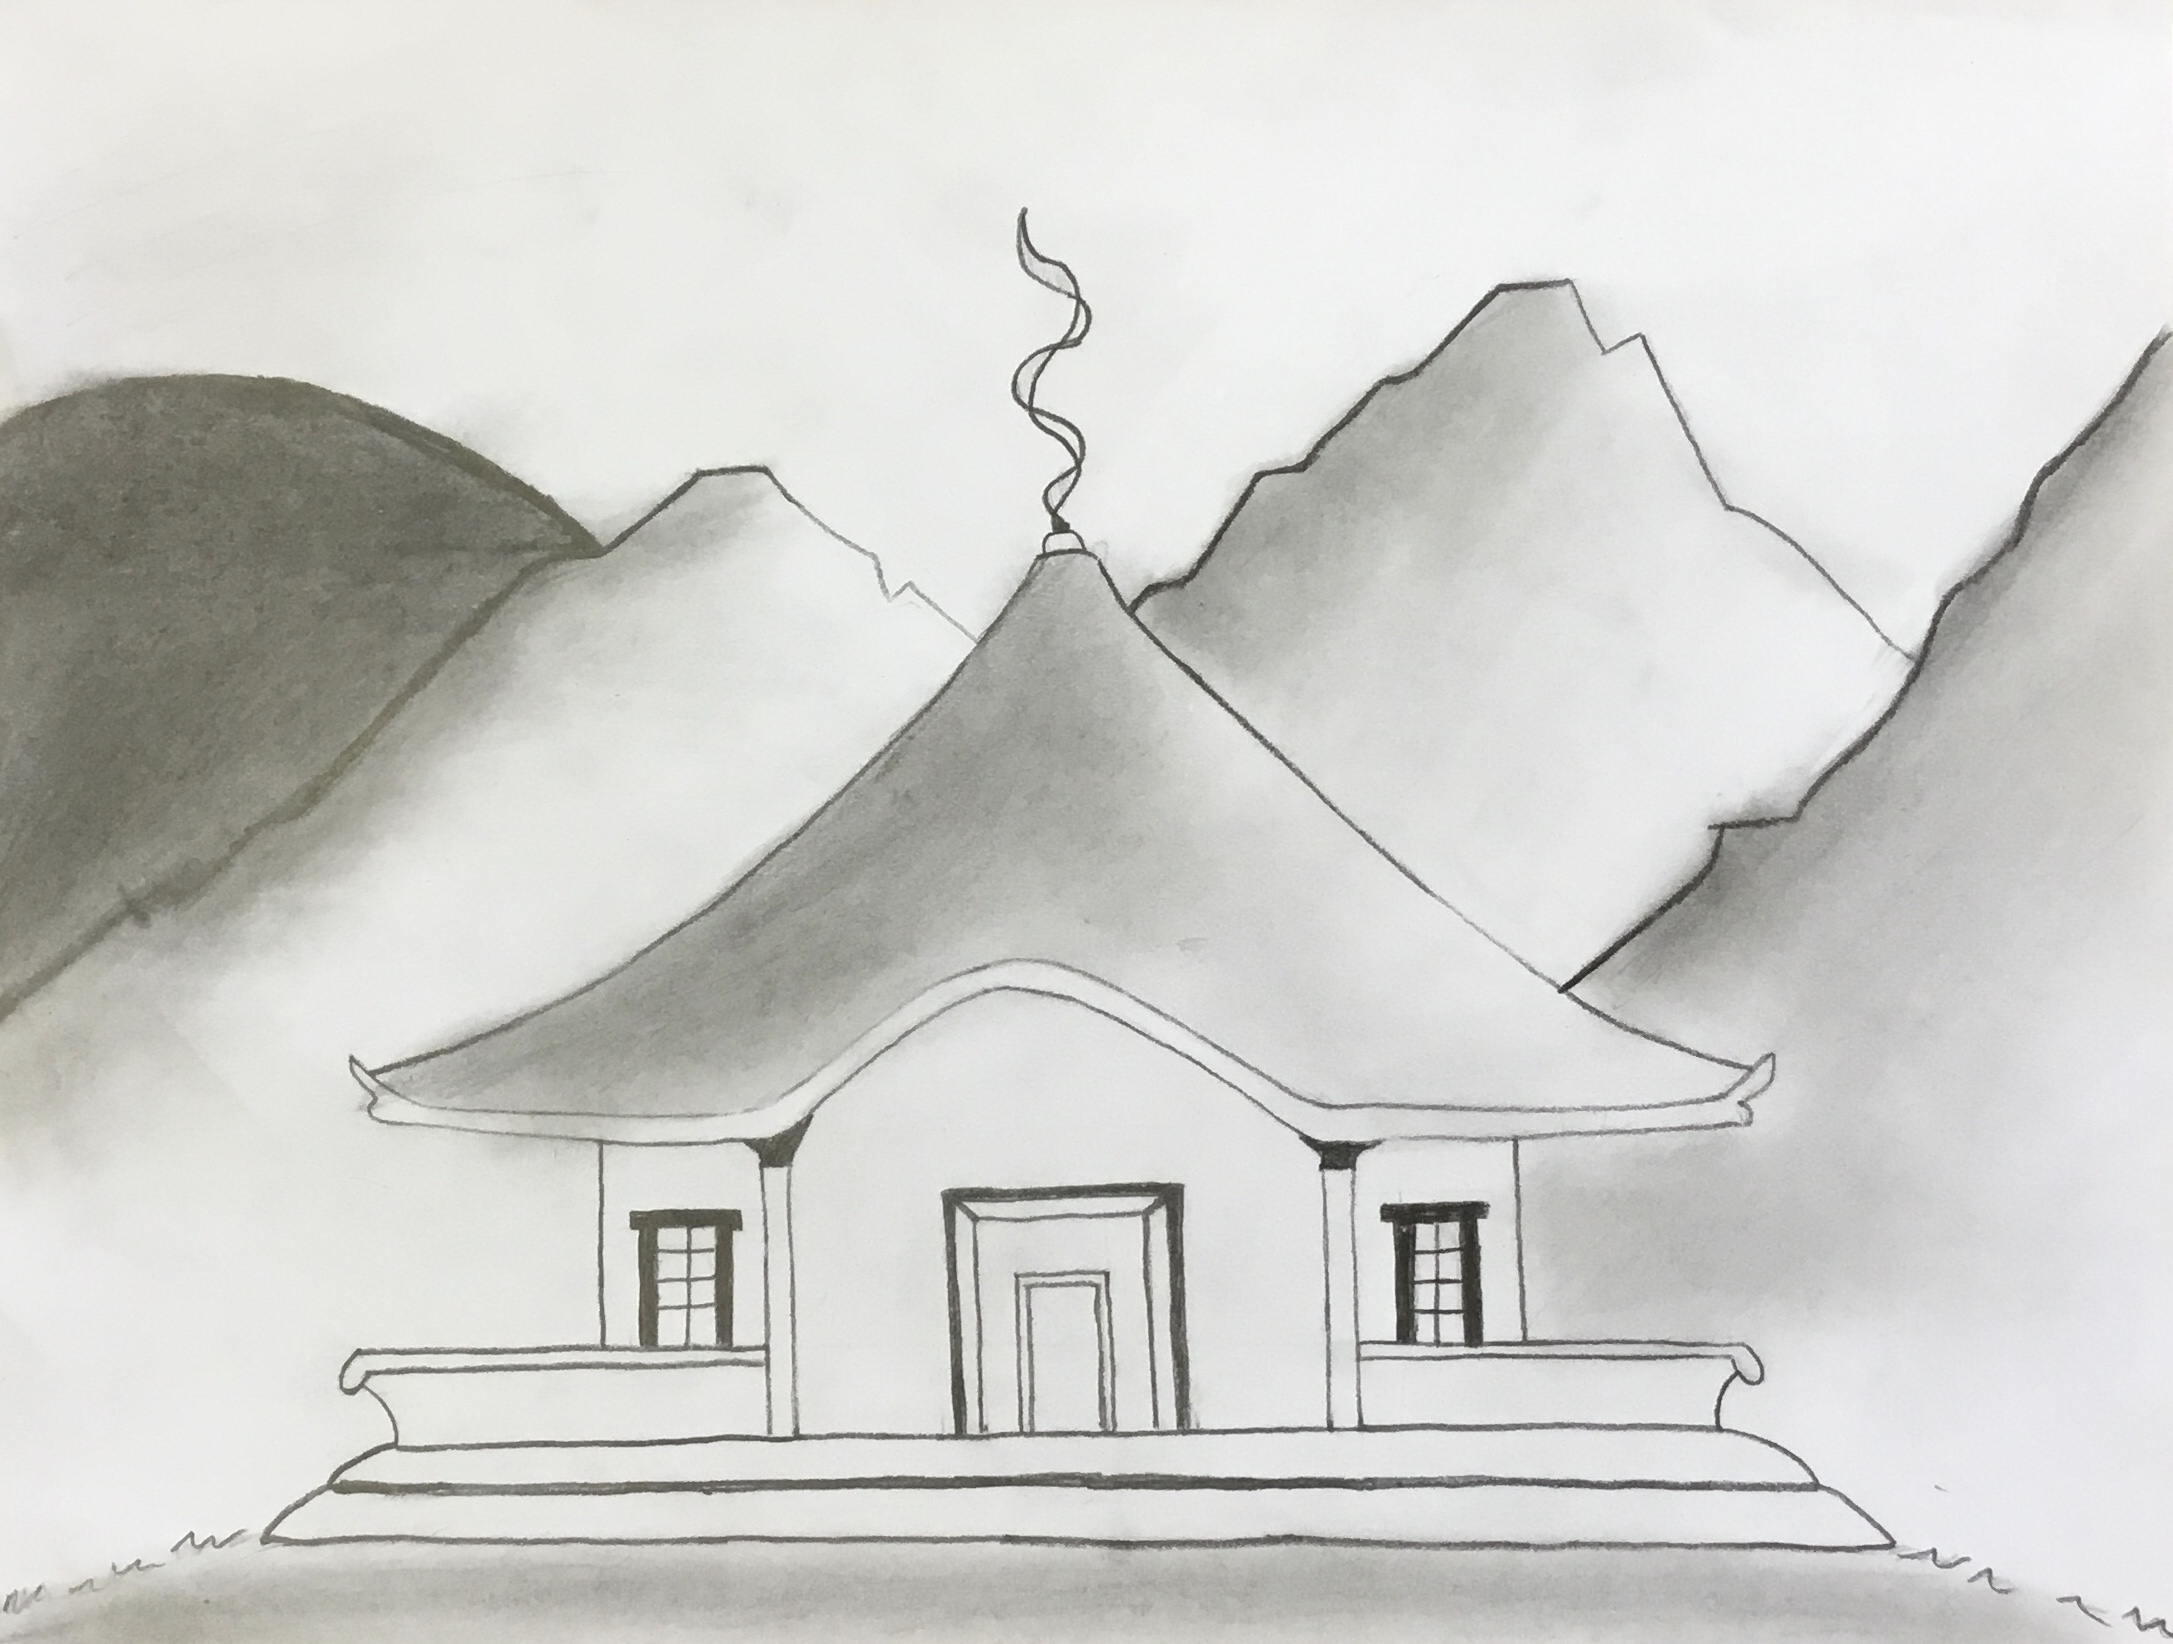 house done in pencil